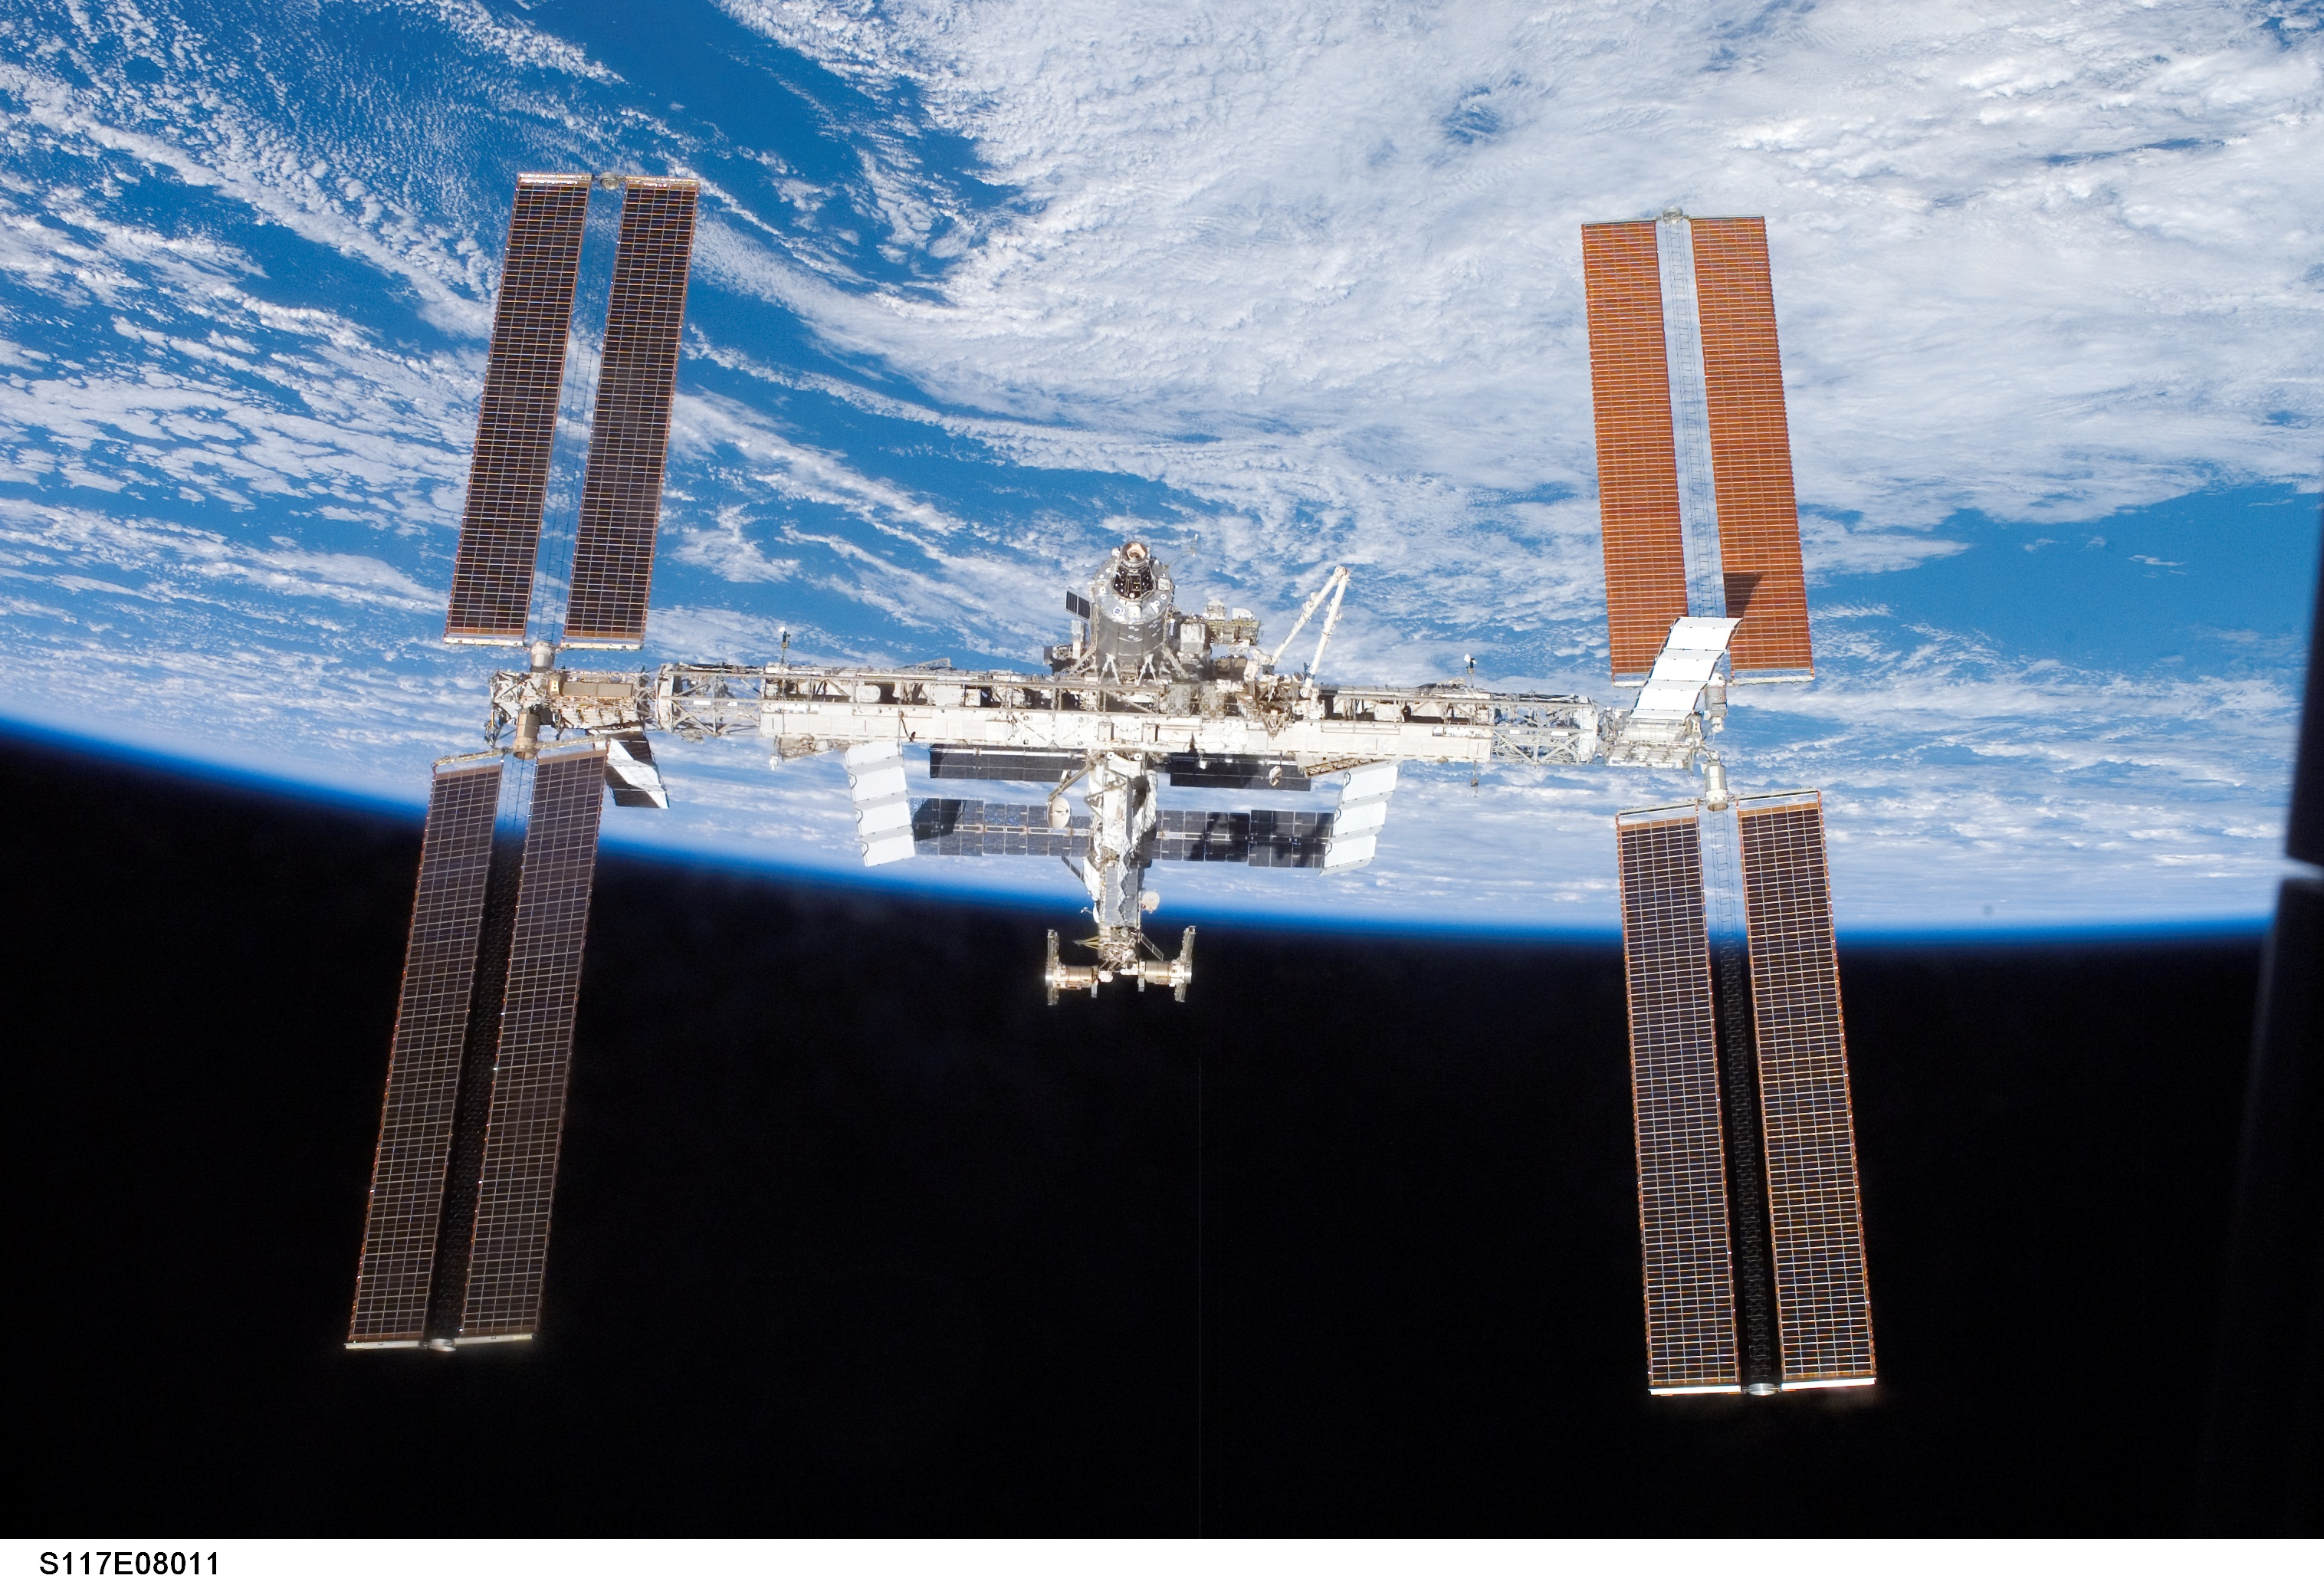 Announcing the Space Station Freedom Program, January 25 ...